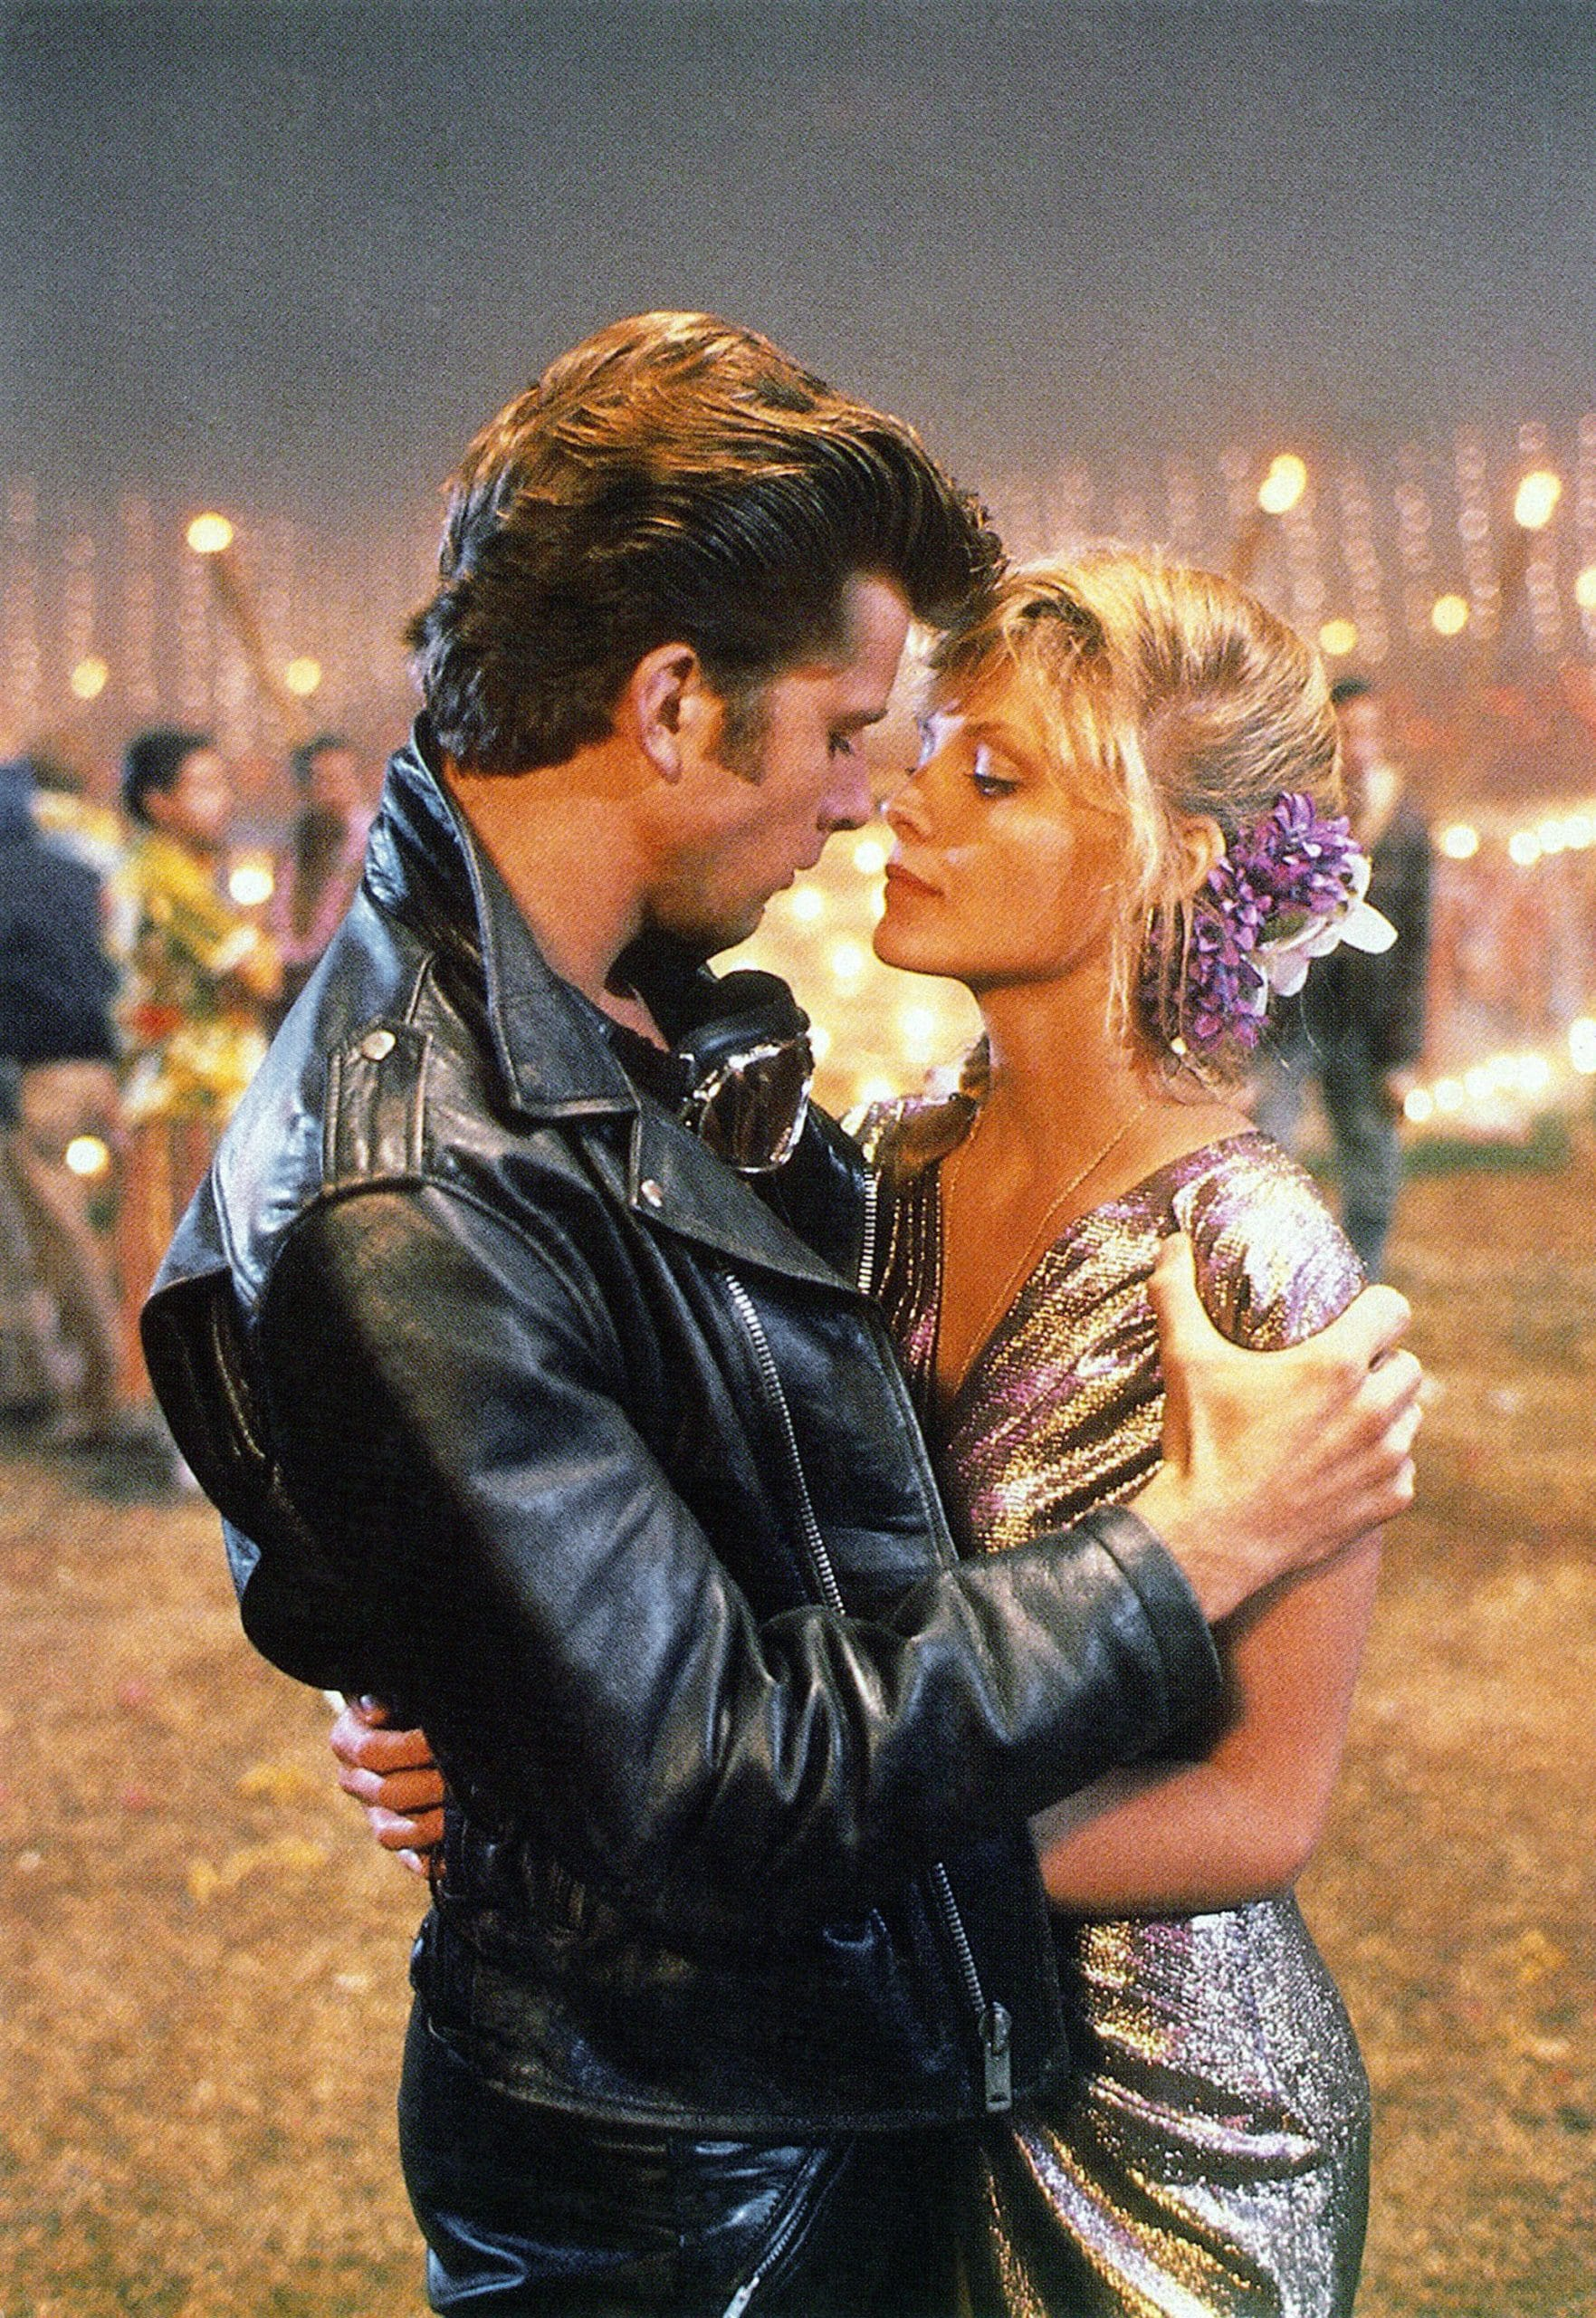 GREASE 2, from left: Maxwell Caulfield, Michelle Pfeiffer, 1982